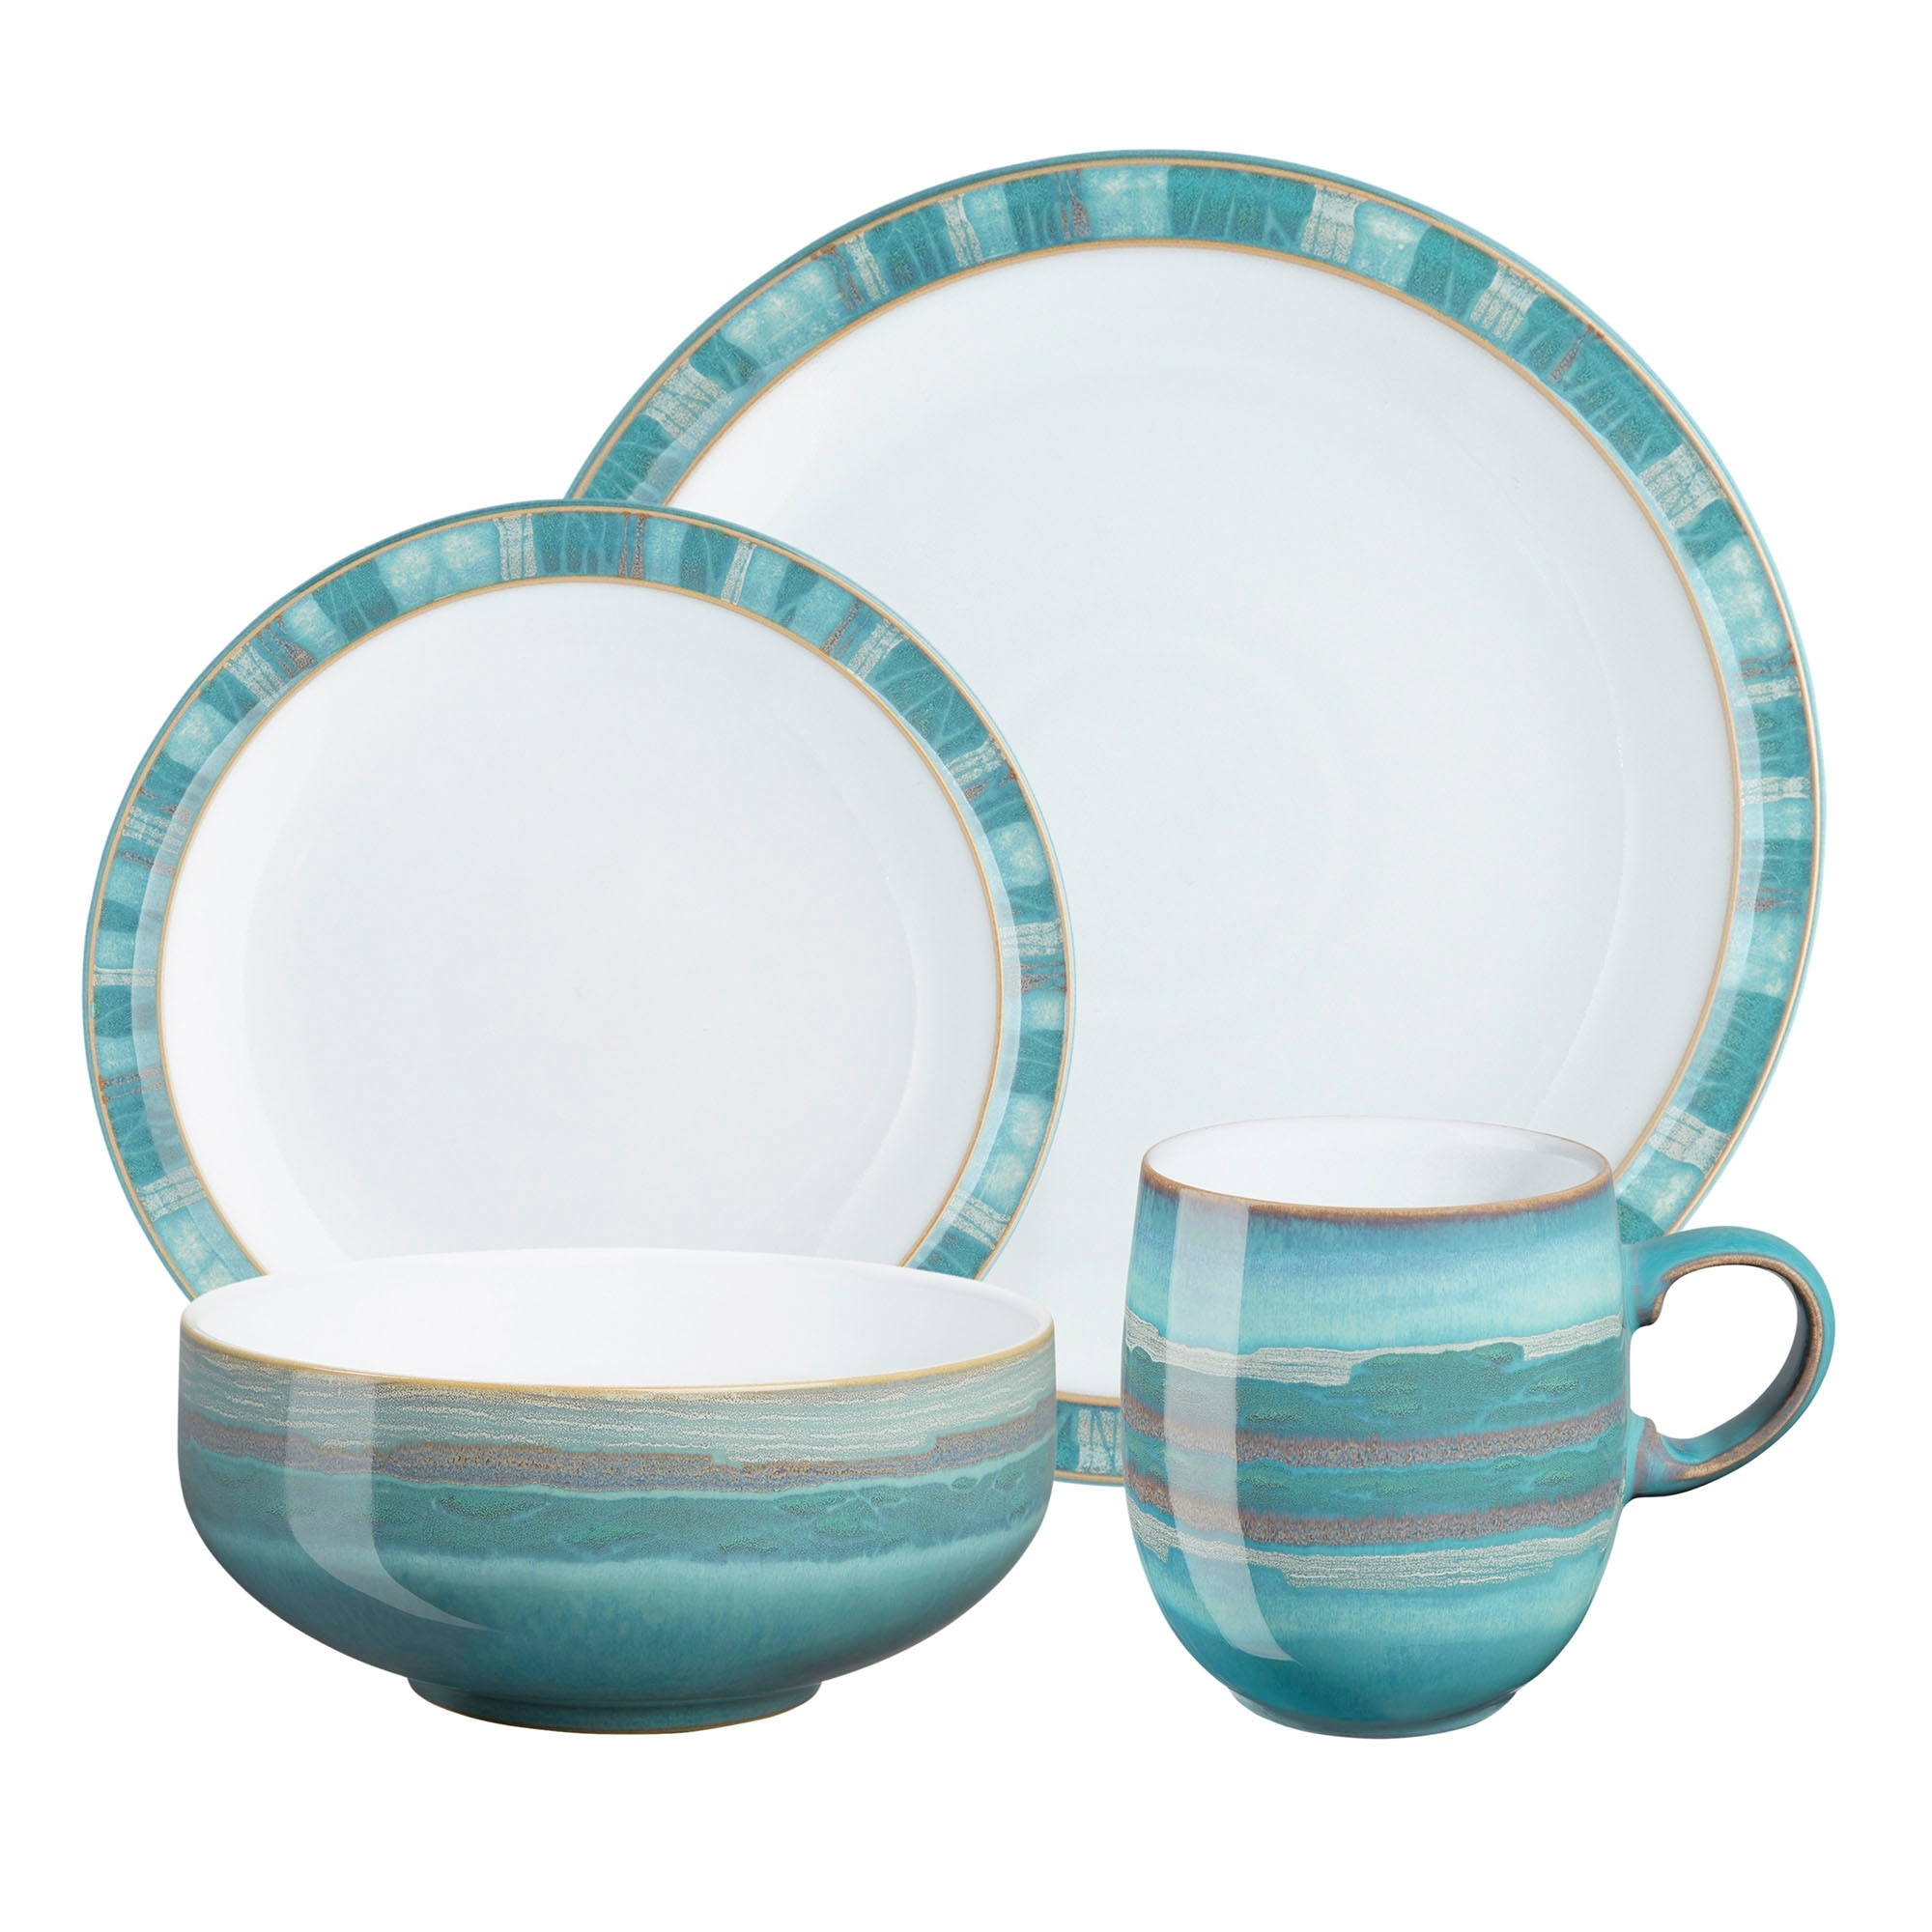 Compare prices for Denby Azure Coast 4 Piece Tableware Set